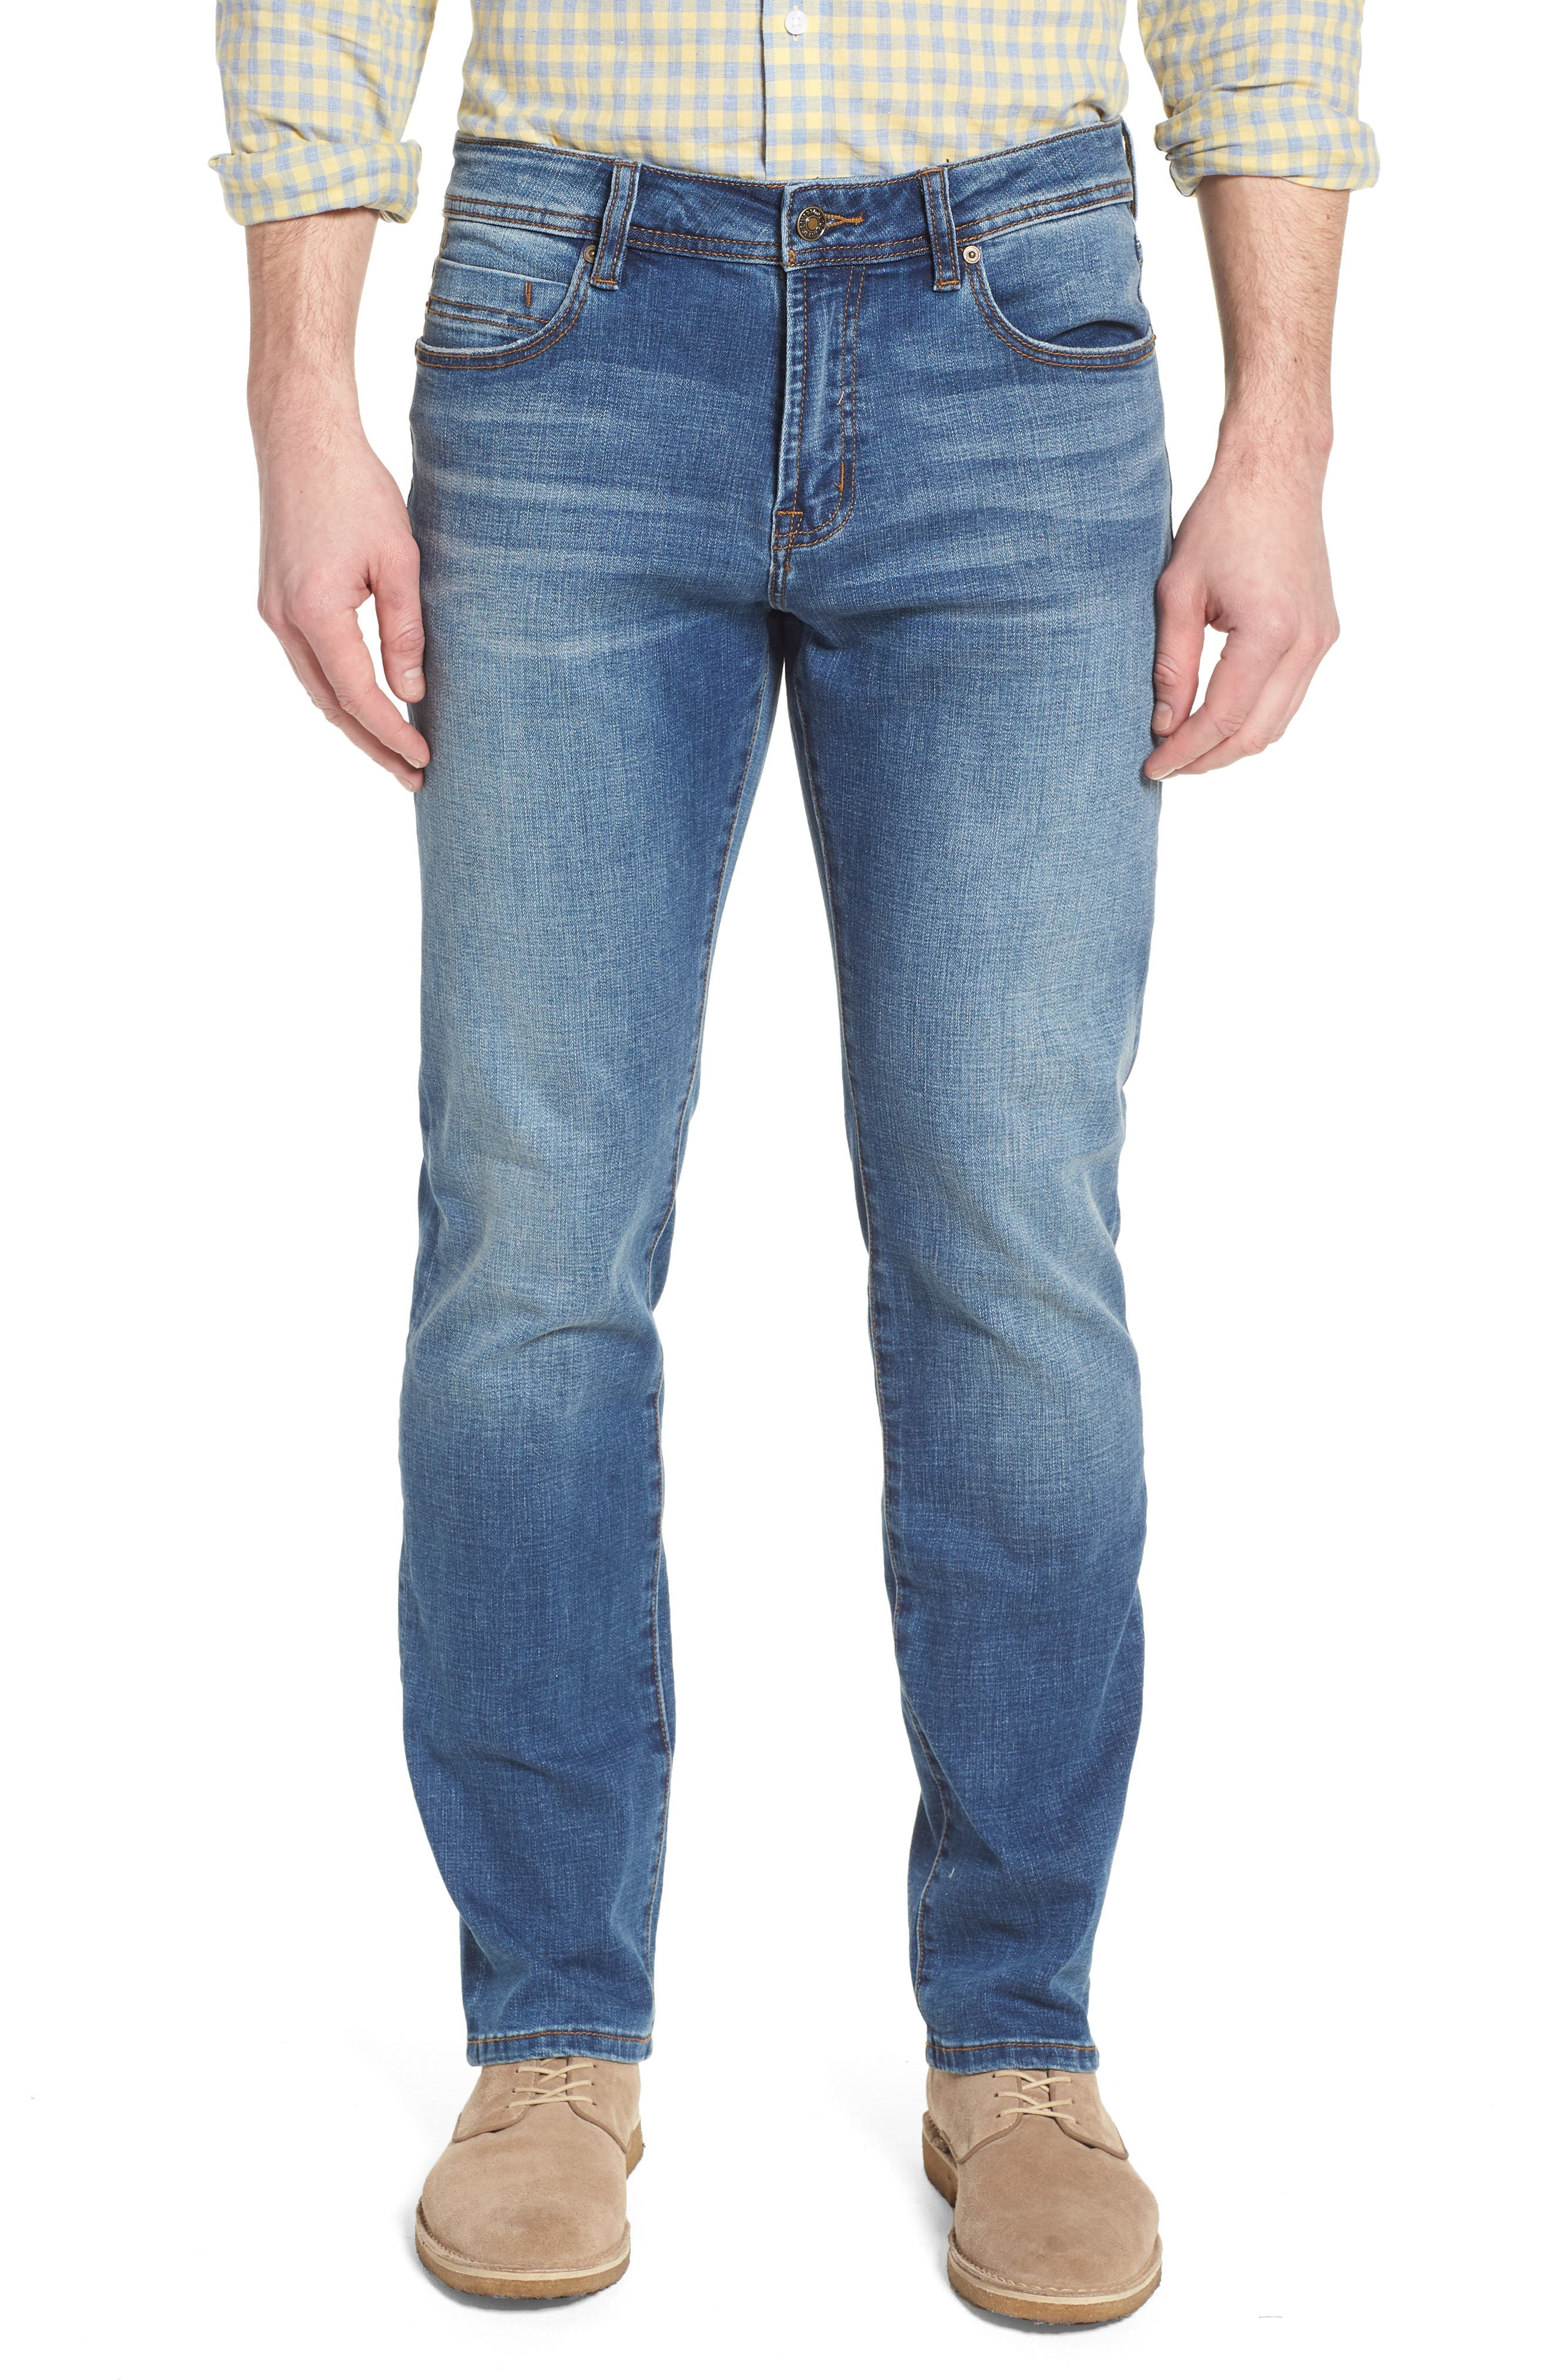 Jeans Co. Regent Relaxed Straight Leg Jeans,                             Main thumbnail 1, color,                             Highlander Mid